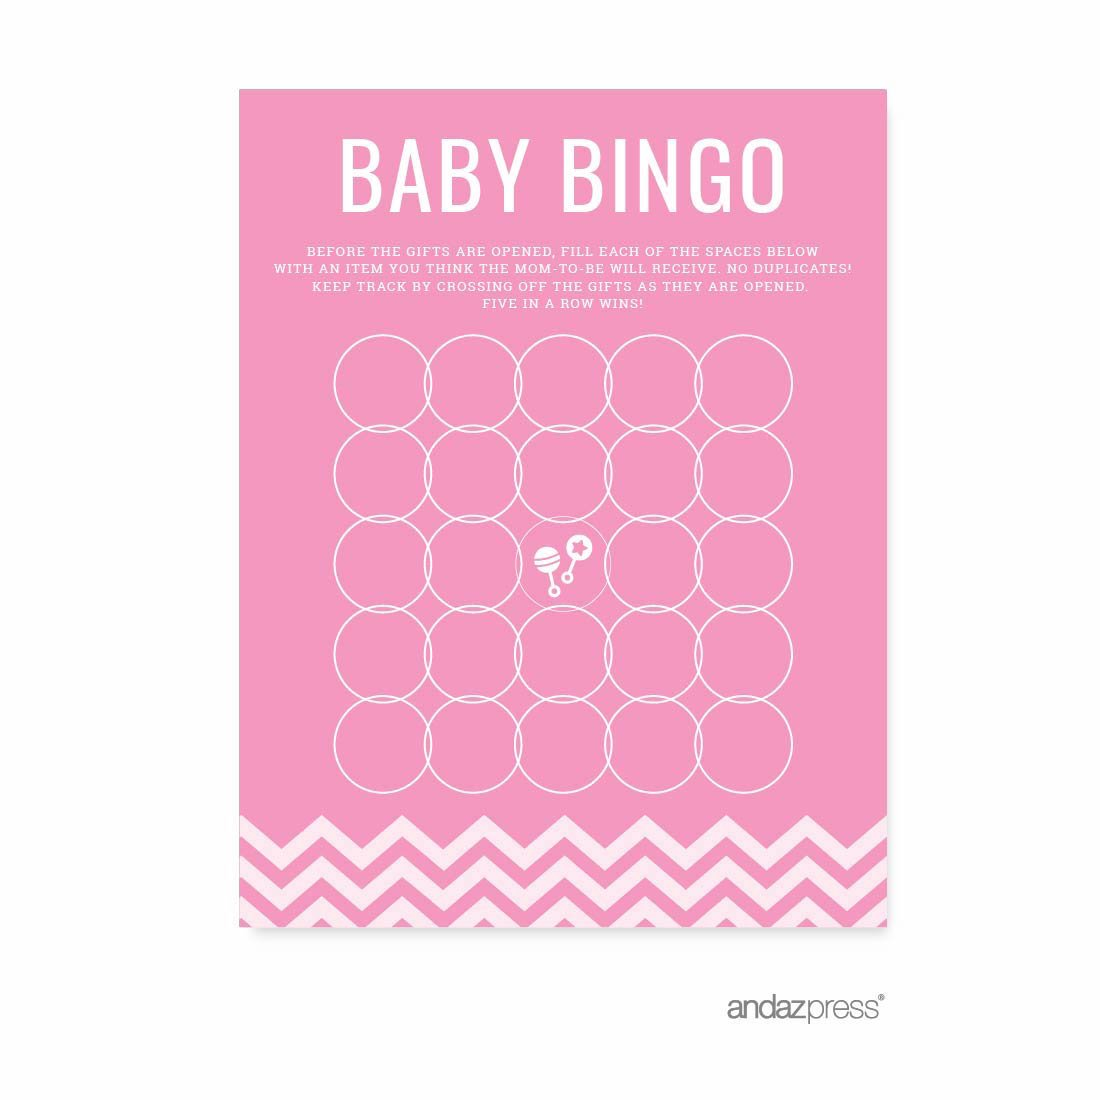 Andaz Press Pink Chevron Girl Baby Shower Collection, Games, Activities, Decorations, Baby Bingo Game Cards, 20-pack